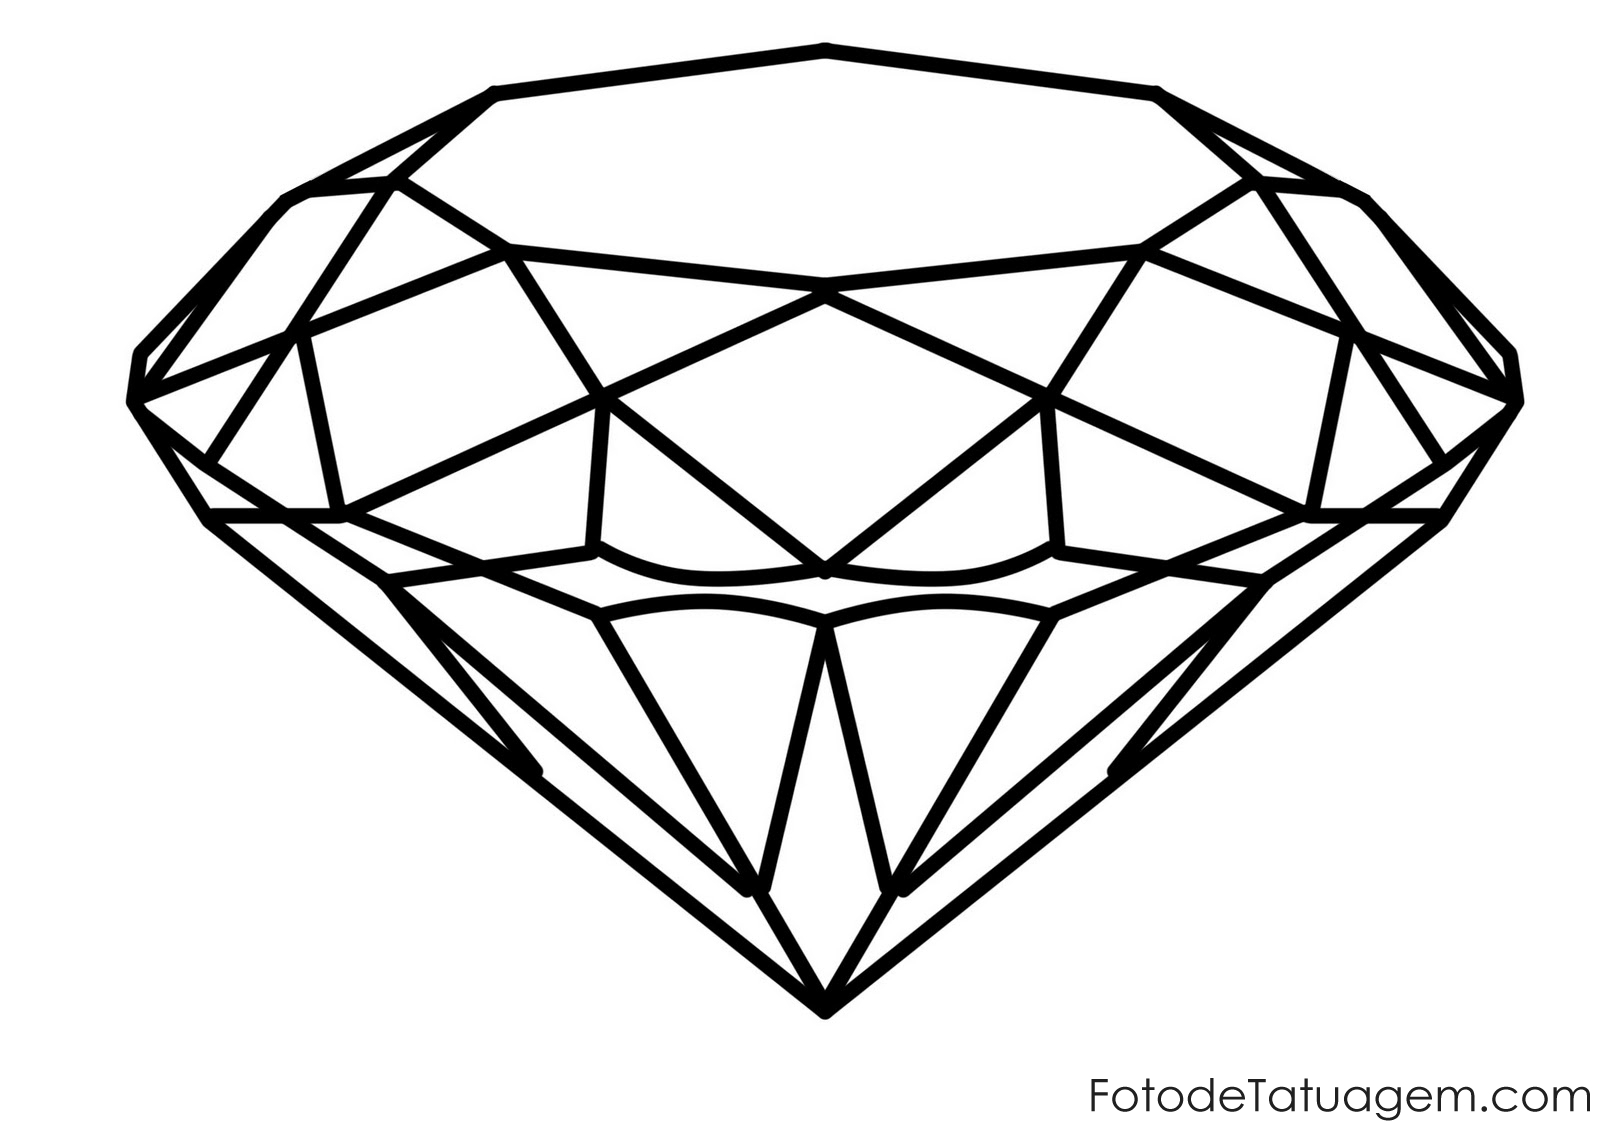 Heart Diamond on Shapes That Are Large